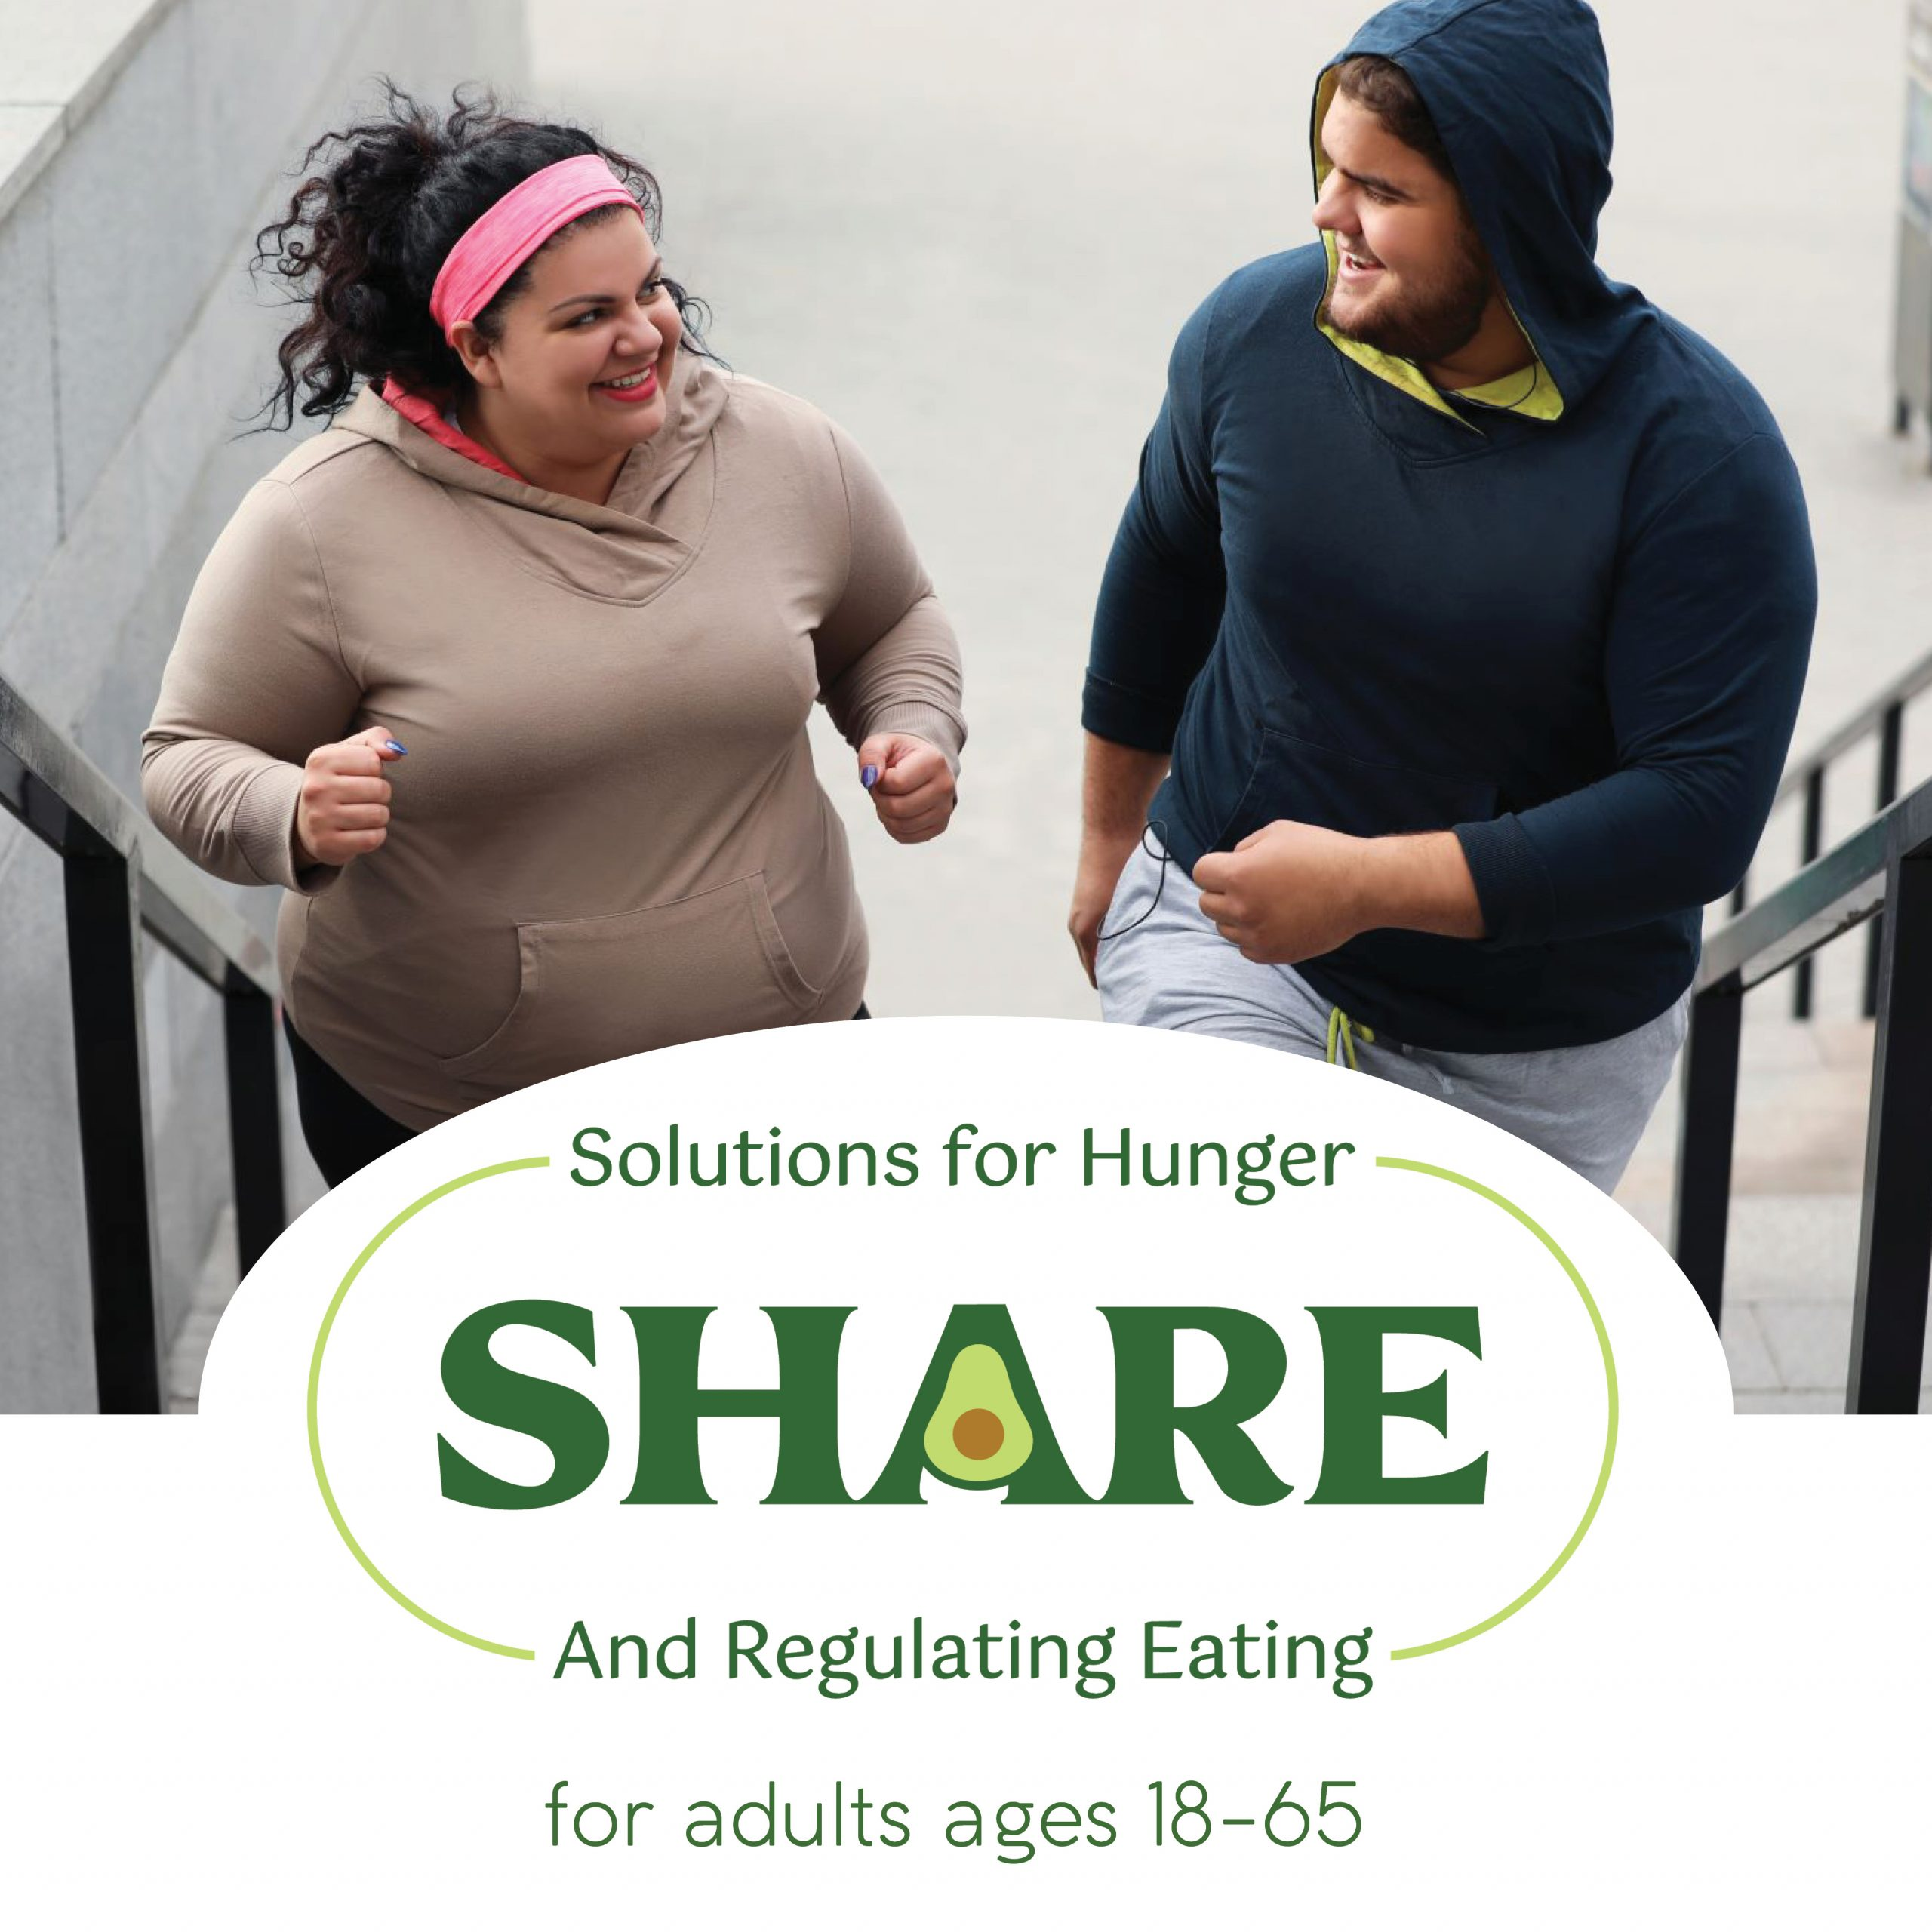 SHARE - Solutions for Hunger and Regulating Eating